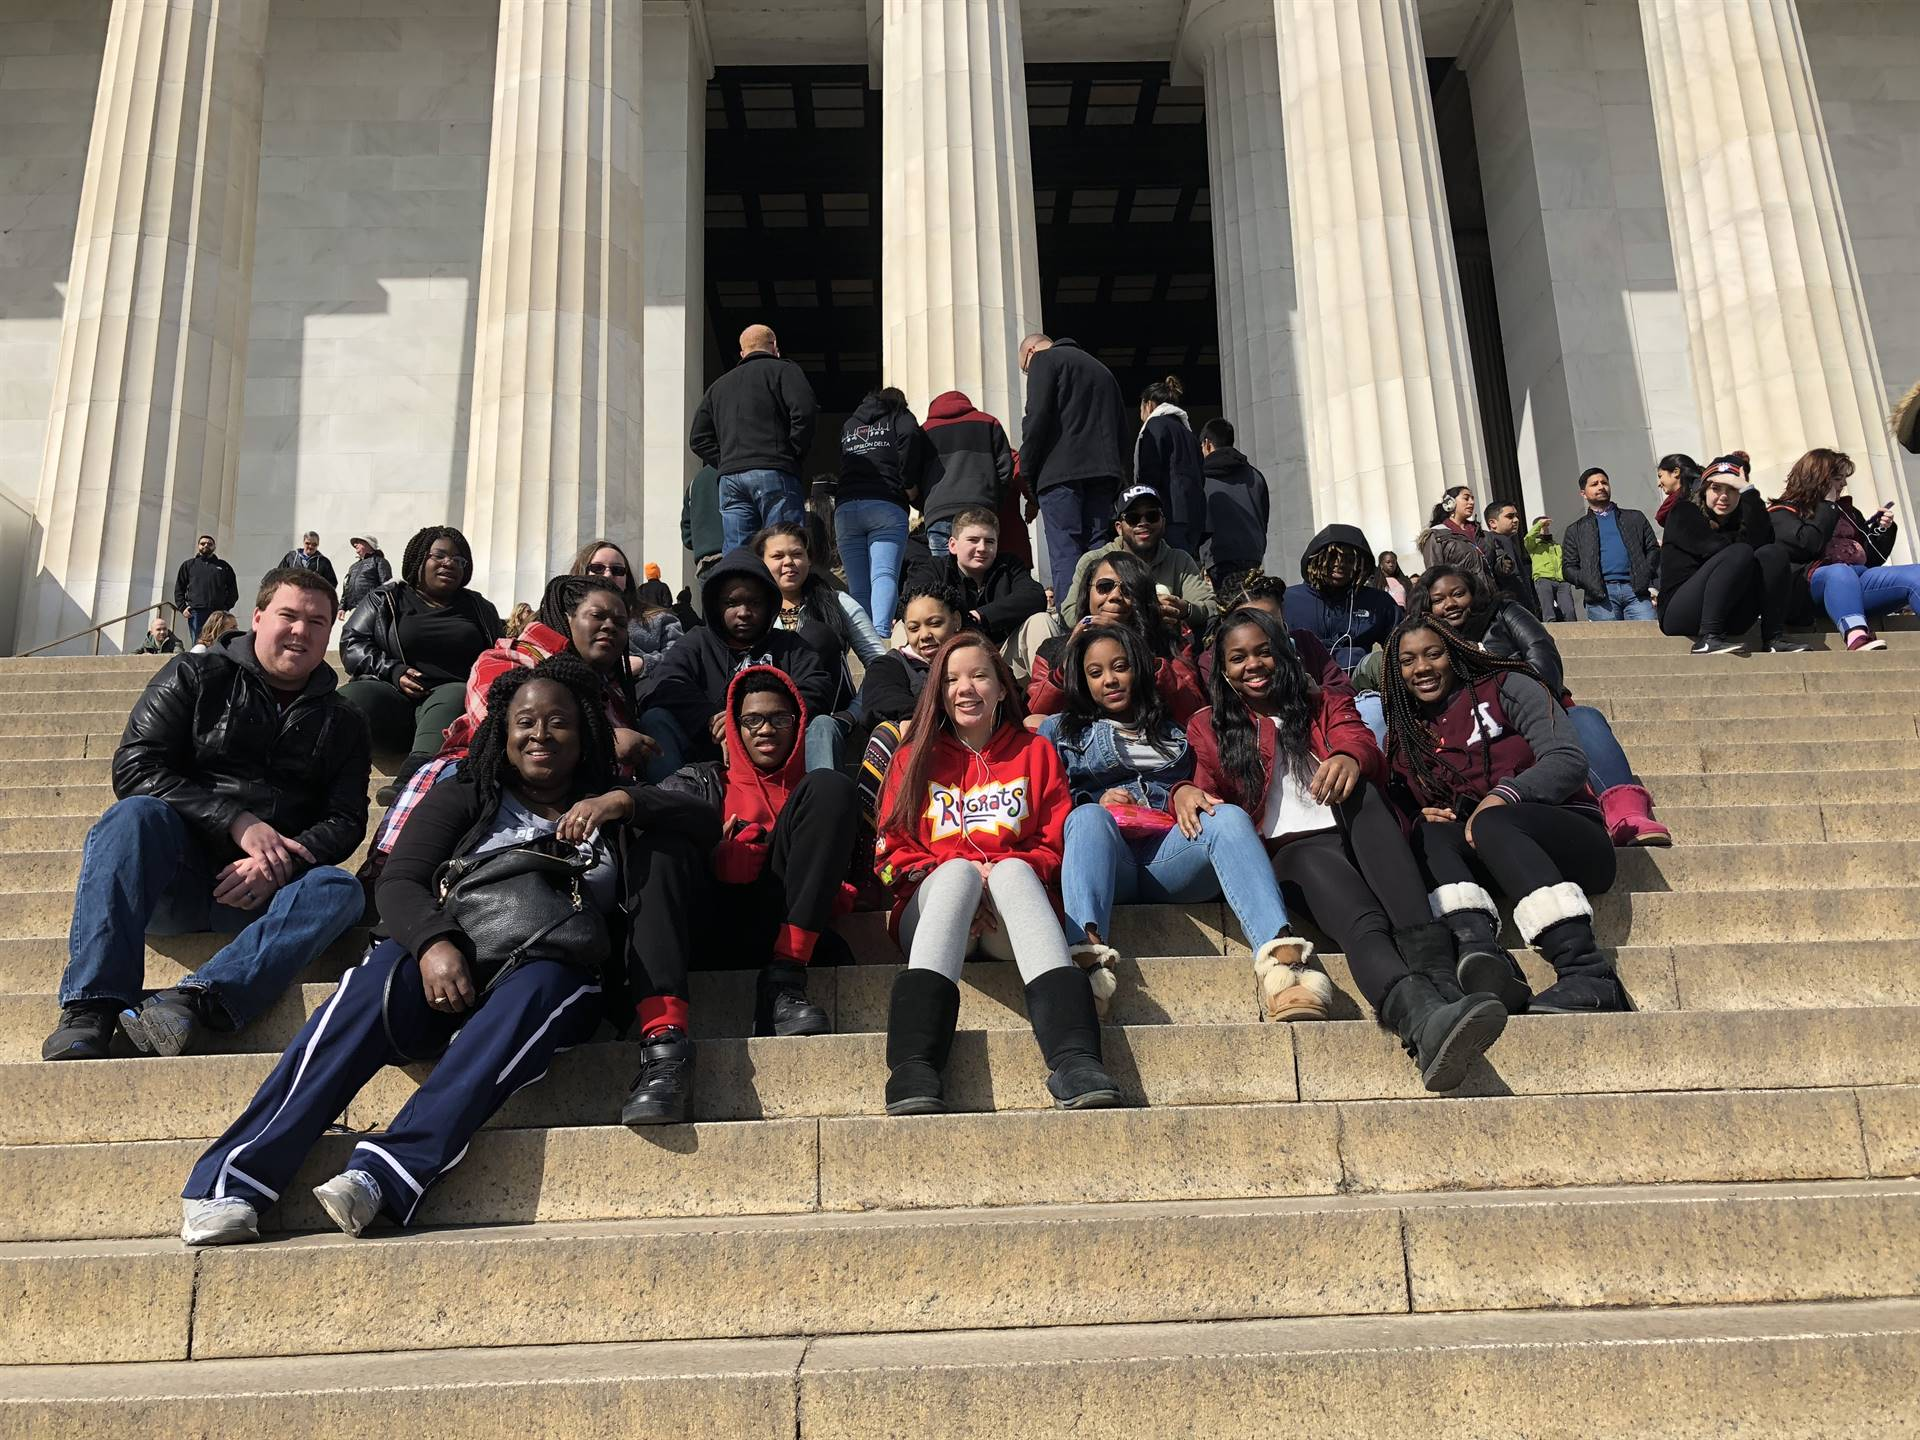 Students on the steps of a memorial